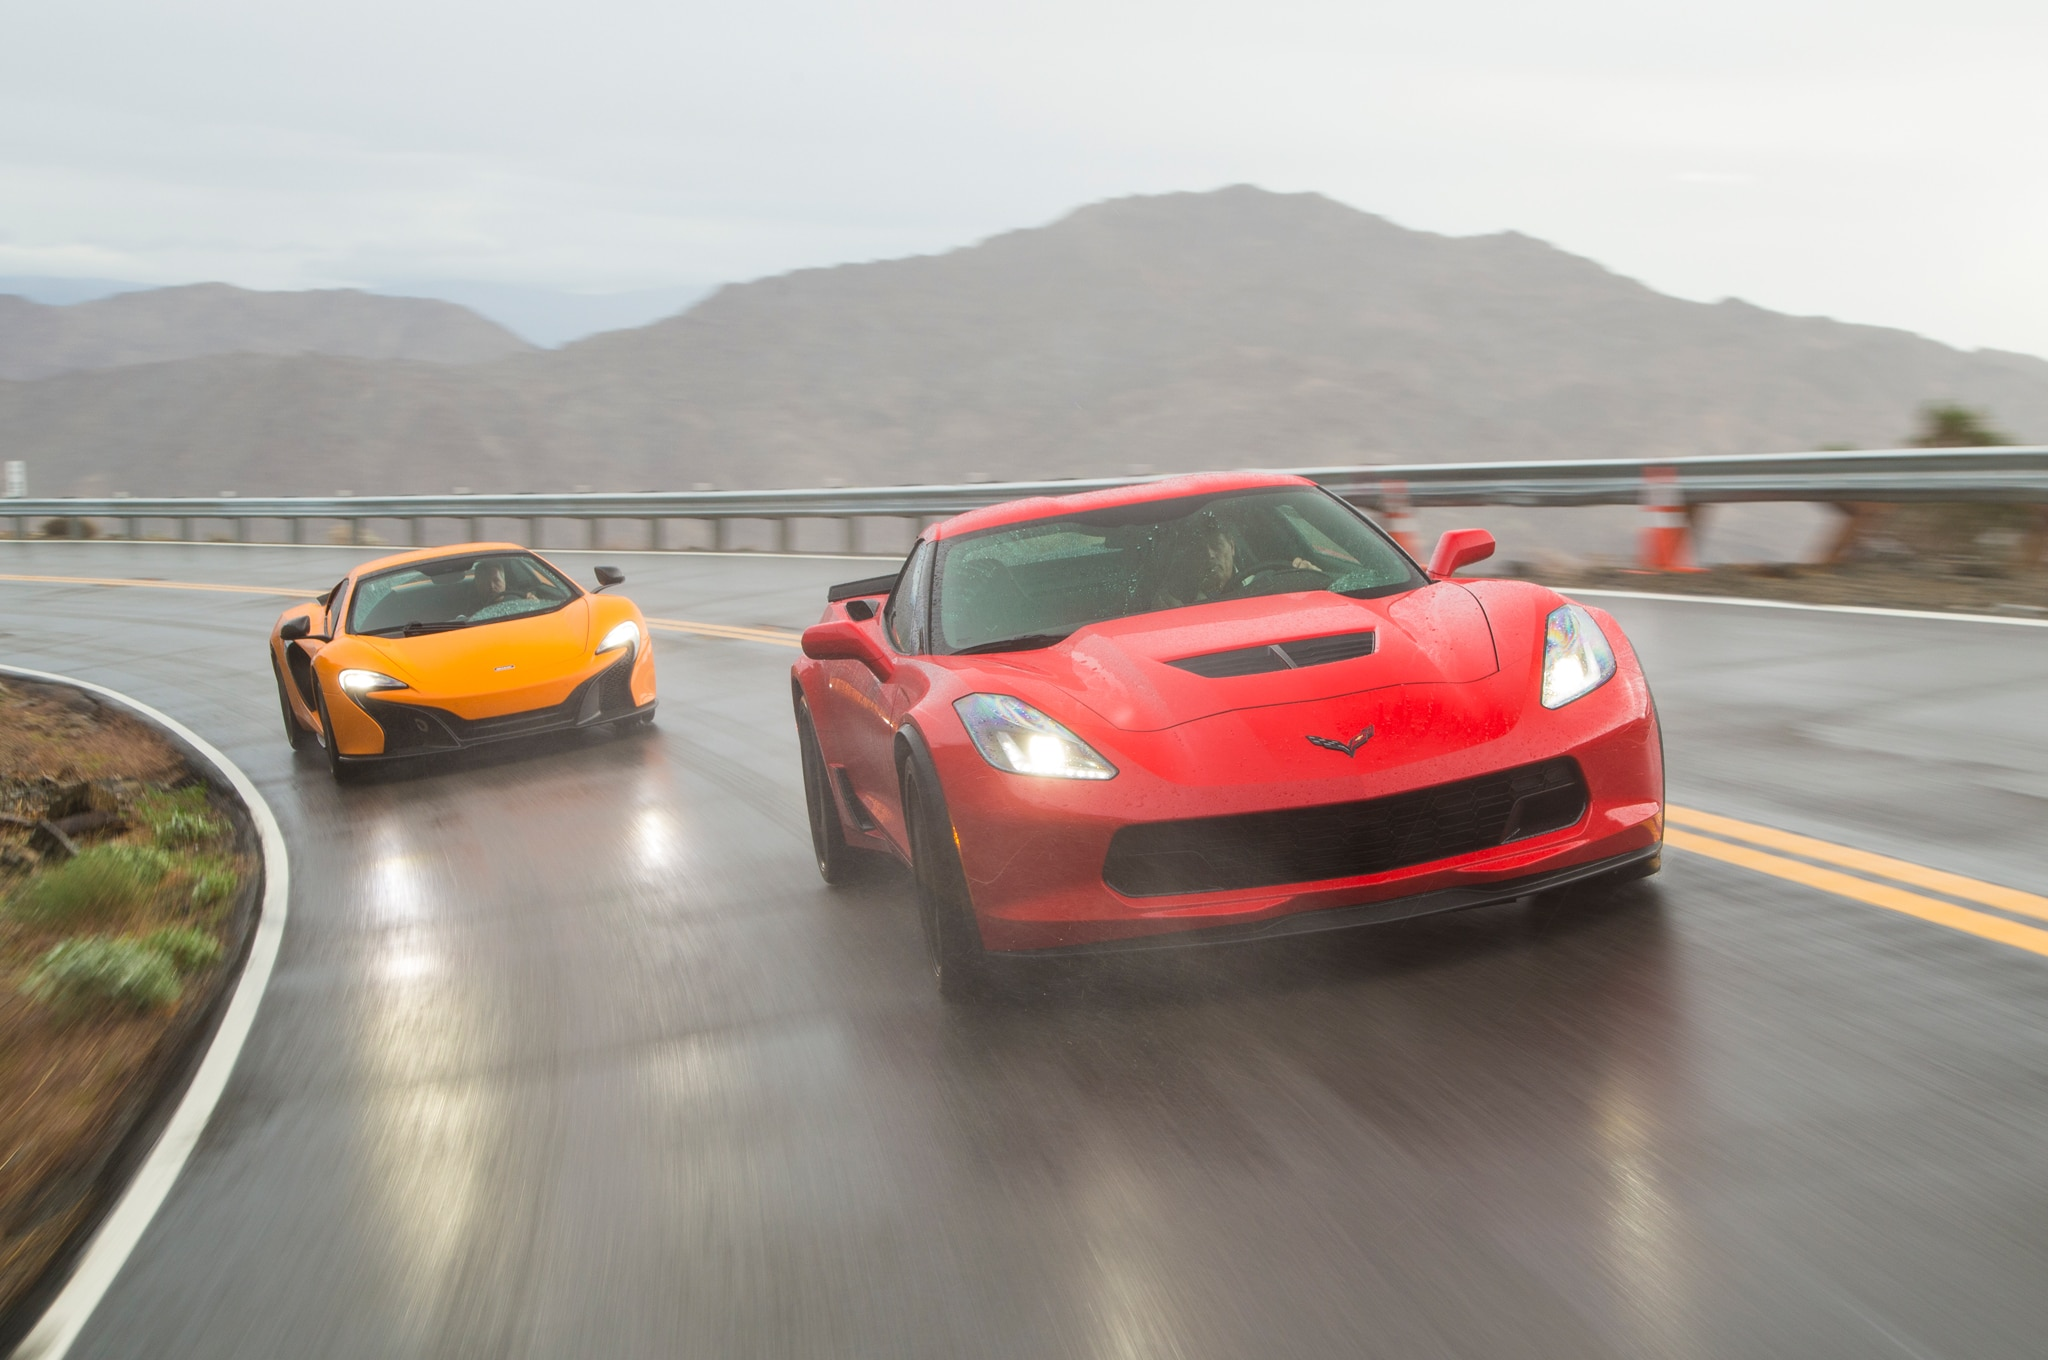 Corvette-Z06-vs-McLaren-650S-Spider-23 Mesmerizing Porsche 911 Turbo Vs Z06 Cars Trend